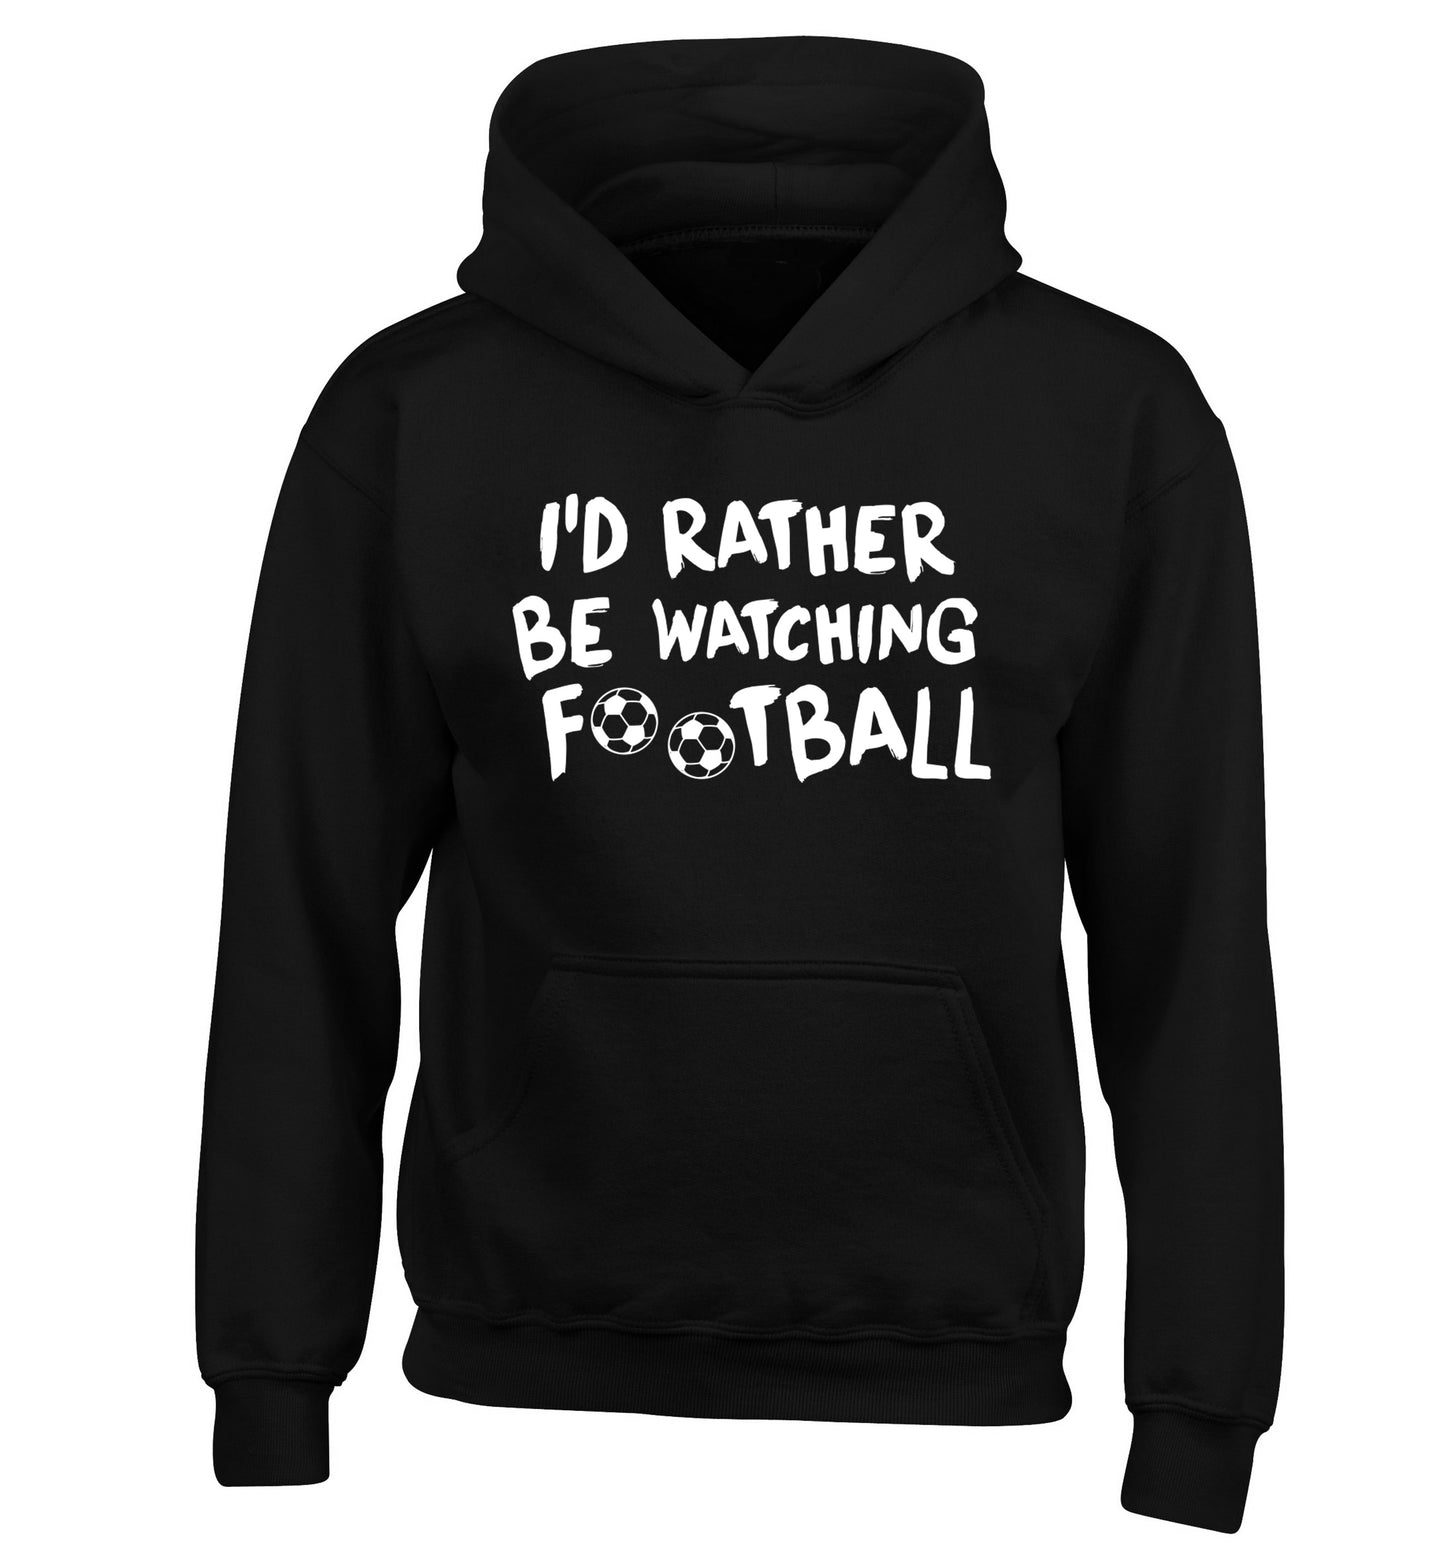 I'd rather be watching football children's black hoodie 12-14 Years